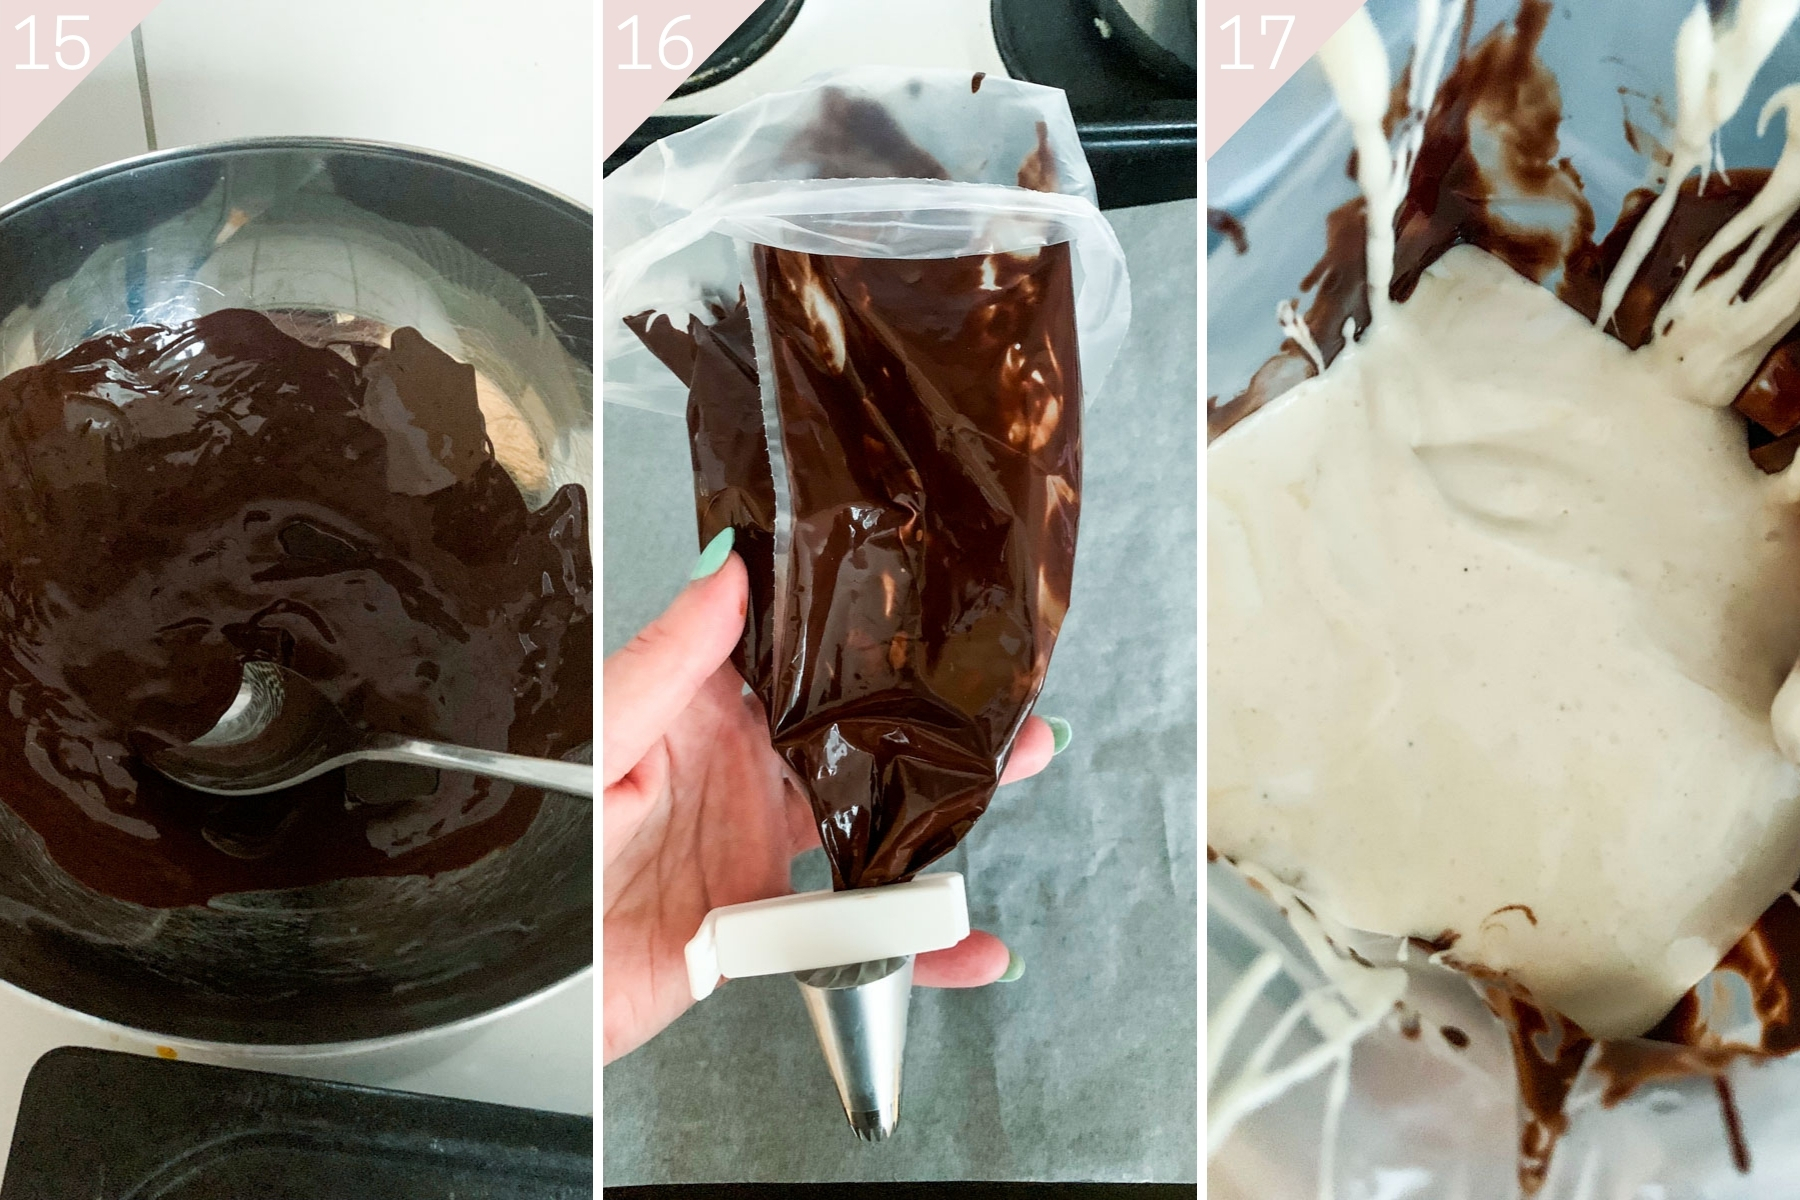 collage showing how to prep piing bags with chocolate and meringue